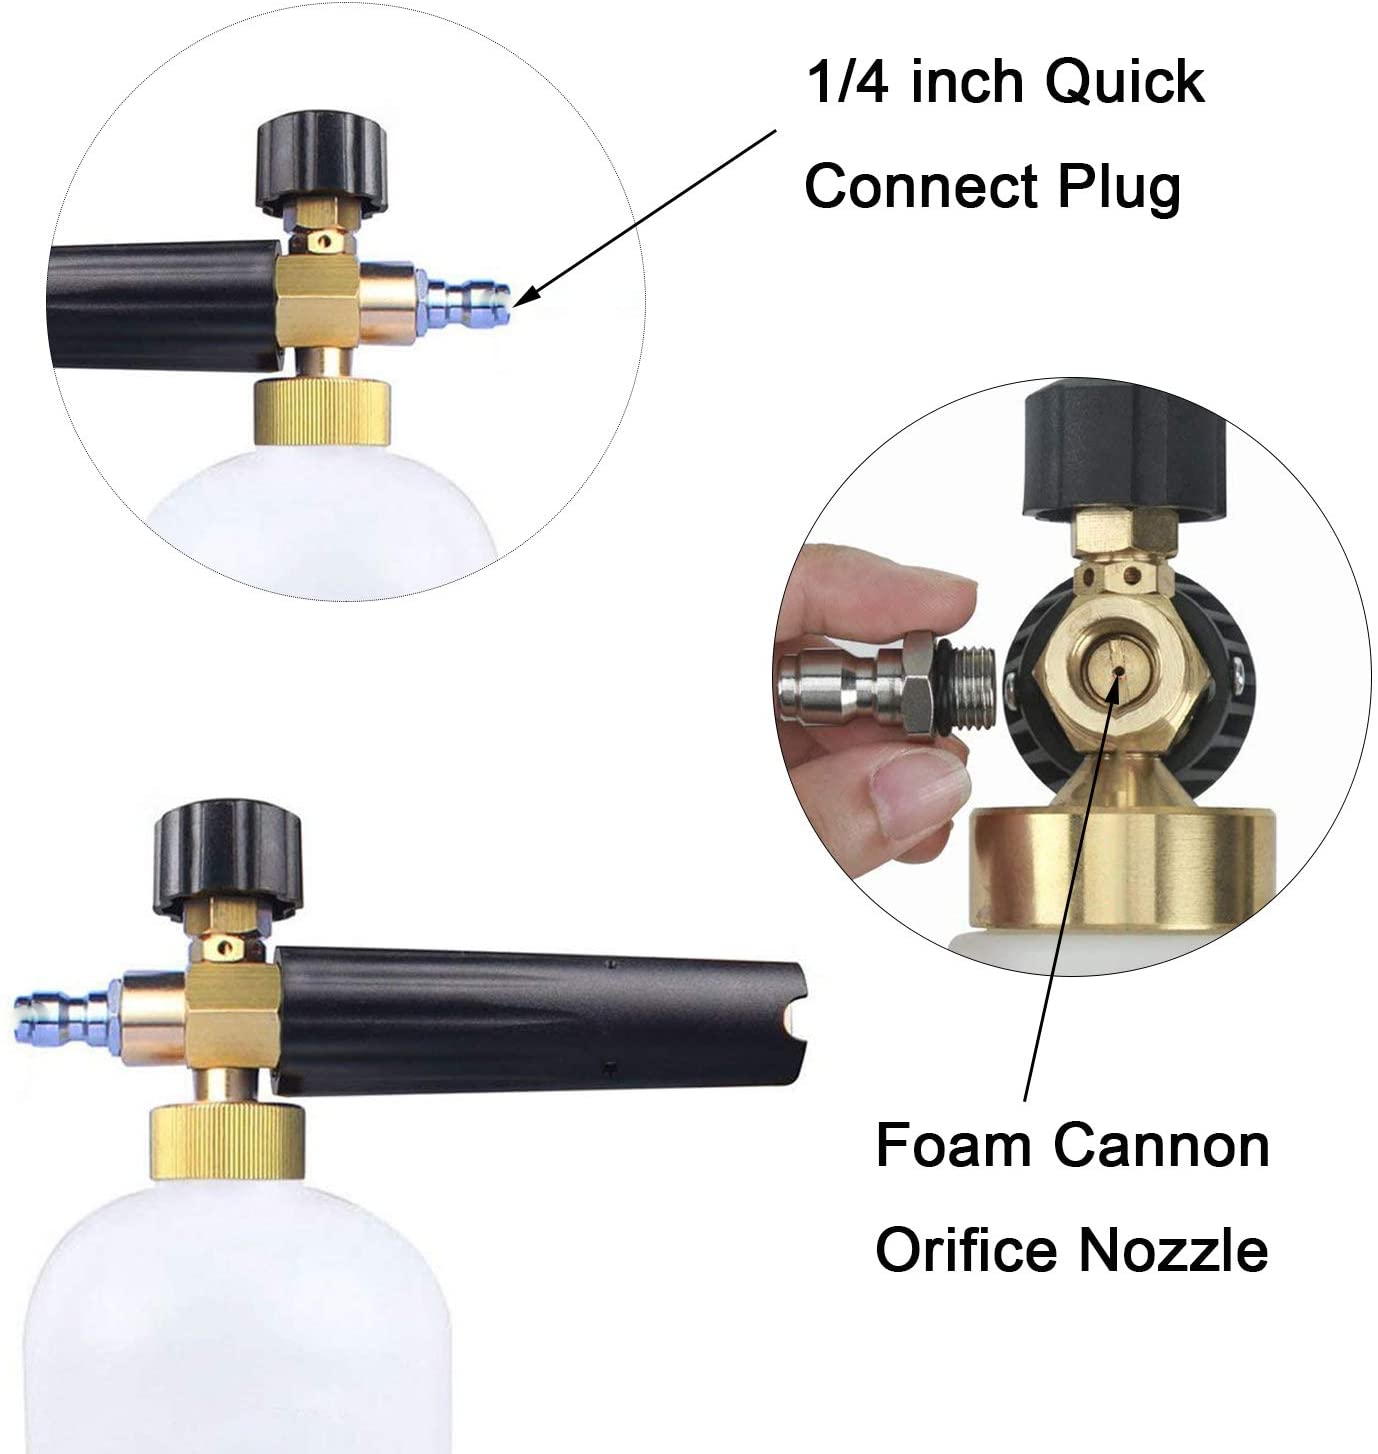 Snow Foam Lance 1.25 mm Foam Cannon Orifice Nozzle Tips, Universal Thread Nozzle Tips, 4000 PSI, 2-Pack